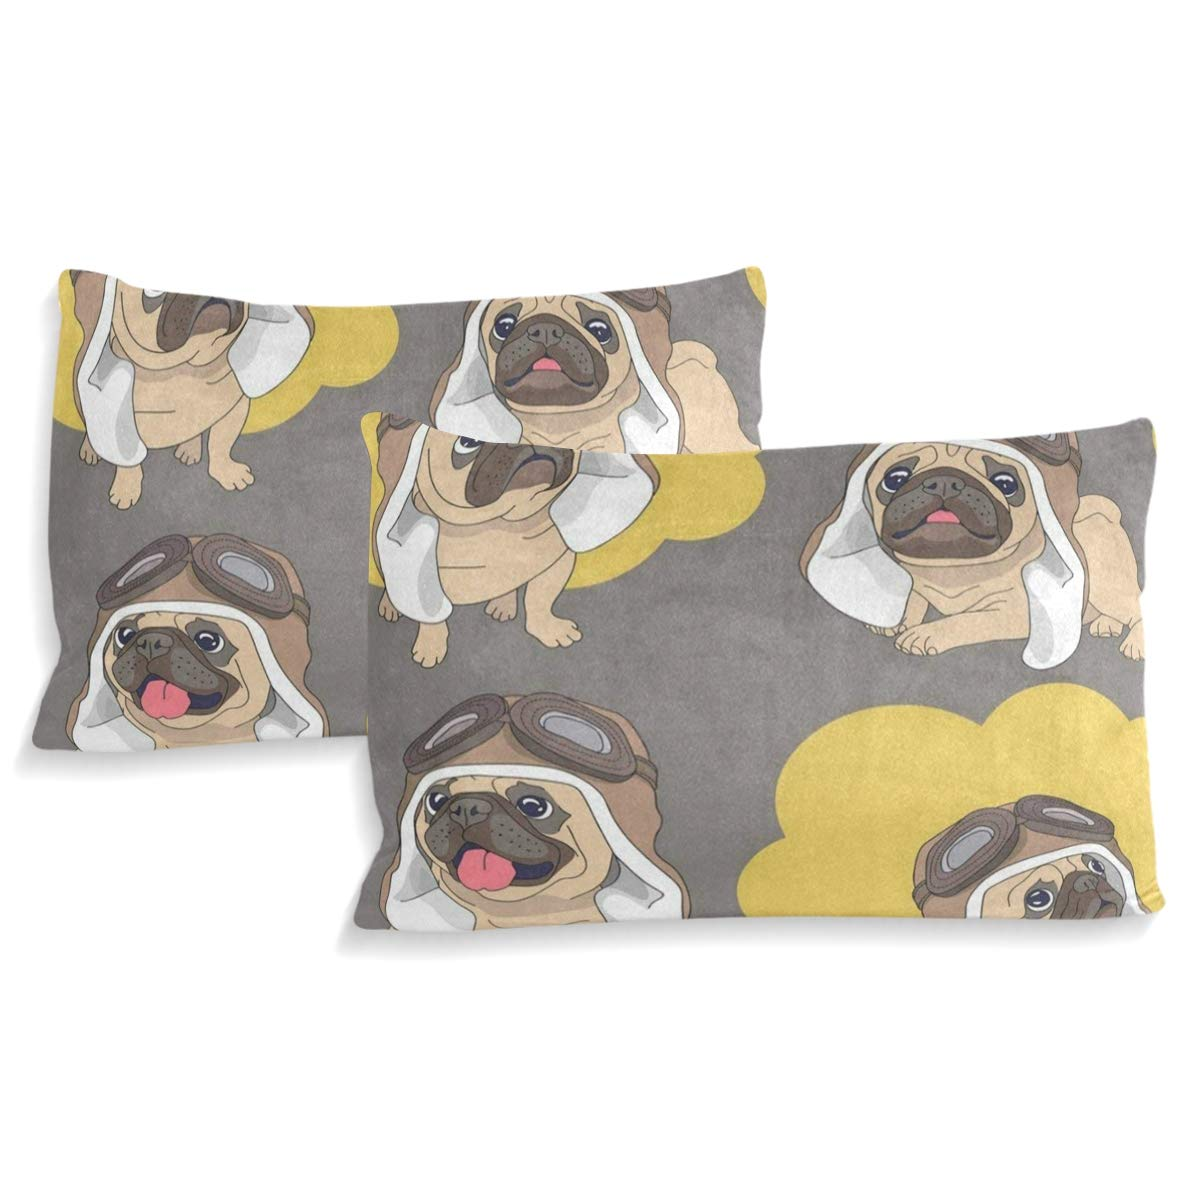 Multicolor IDO Cartoon Pug Puppy Dog Kids Bedding Comforter Cover Sets Ultra Soft Crystal Velvet Cotton Satin Hotel Collection-Decorative 3 Piece Bedding Set with 2 Pillow Shams